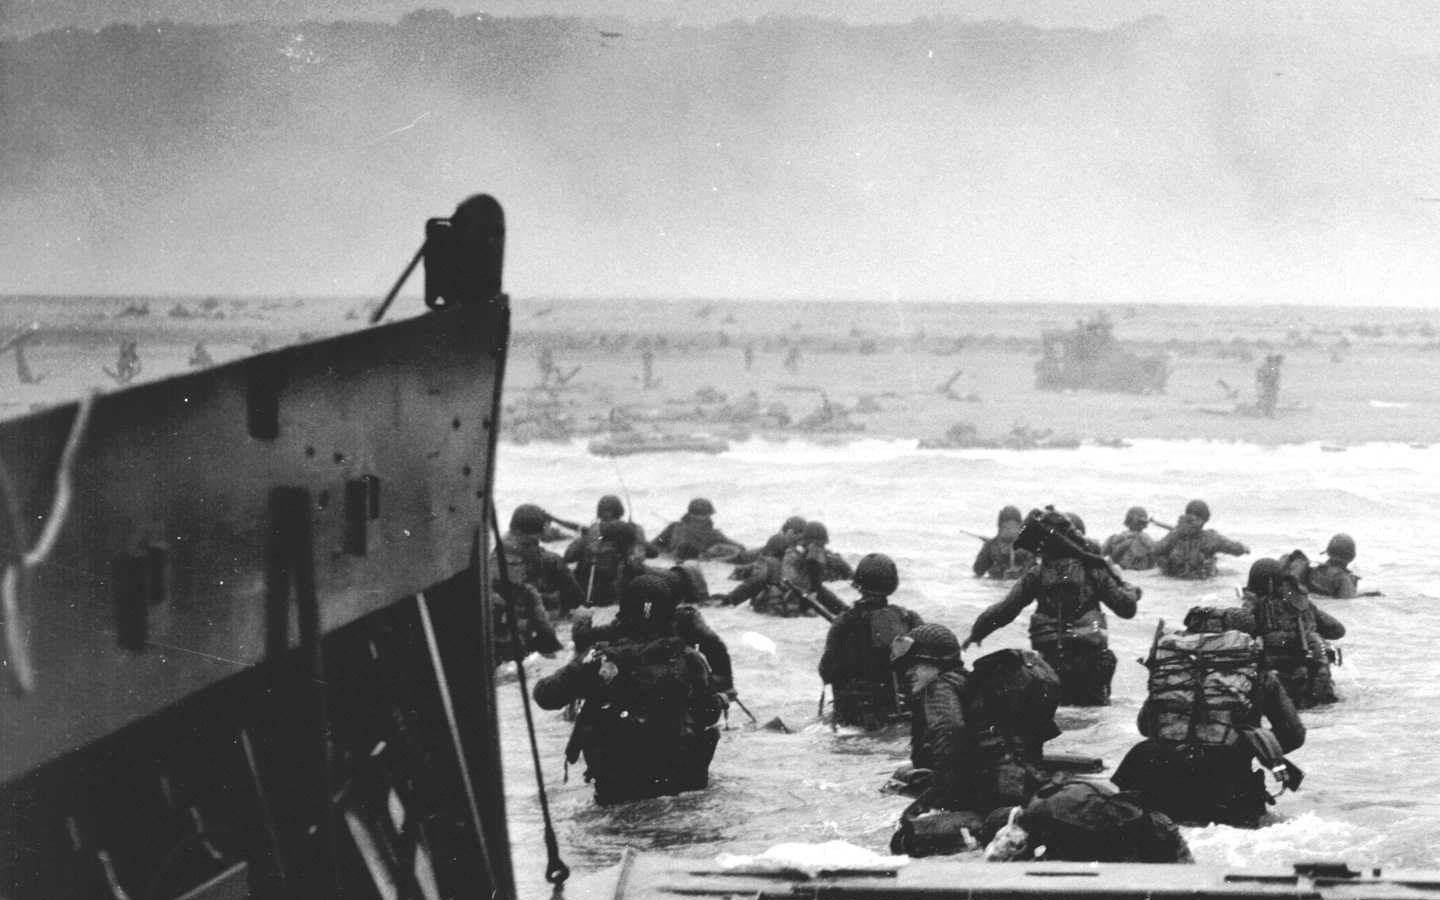 Day reenactment ww ii pictures pinterest - Collection Of D Day Wallpaper On Hdwallpapers